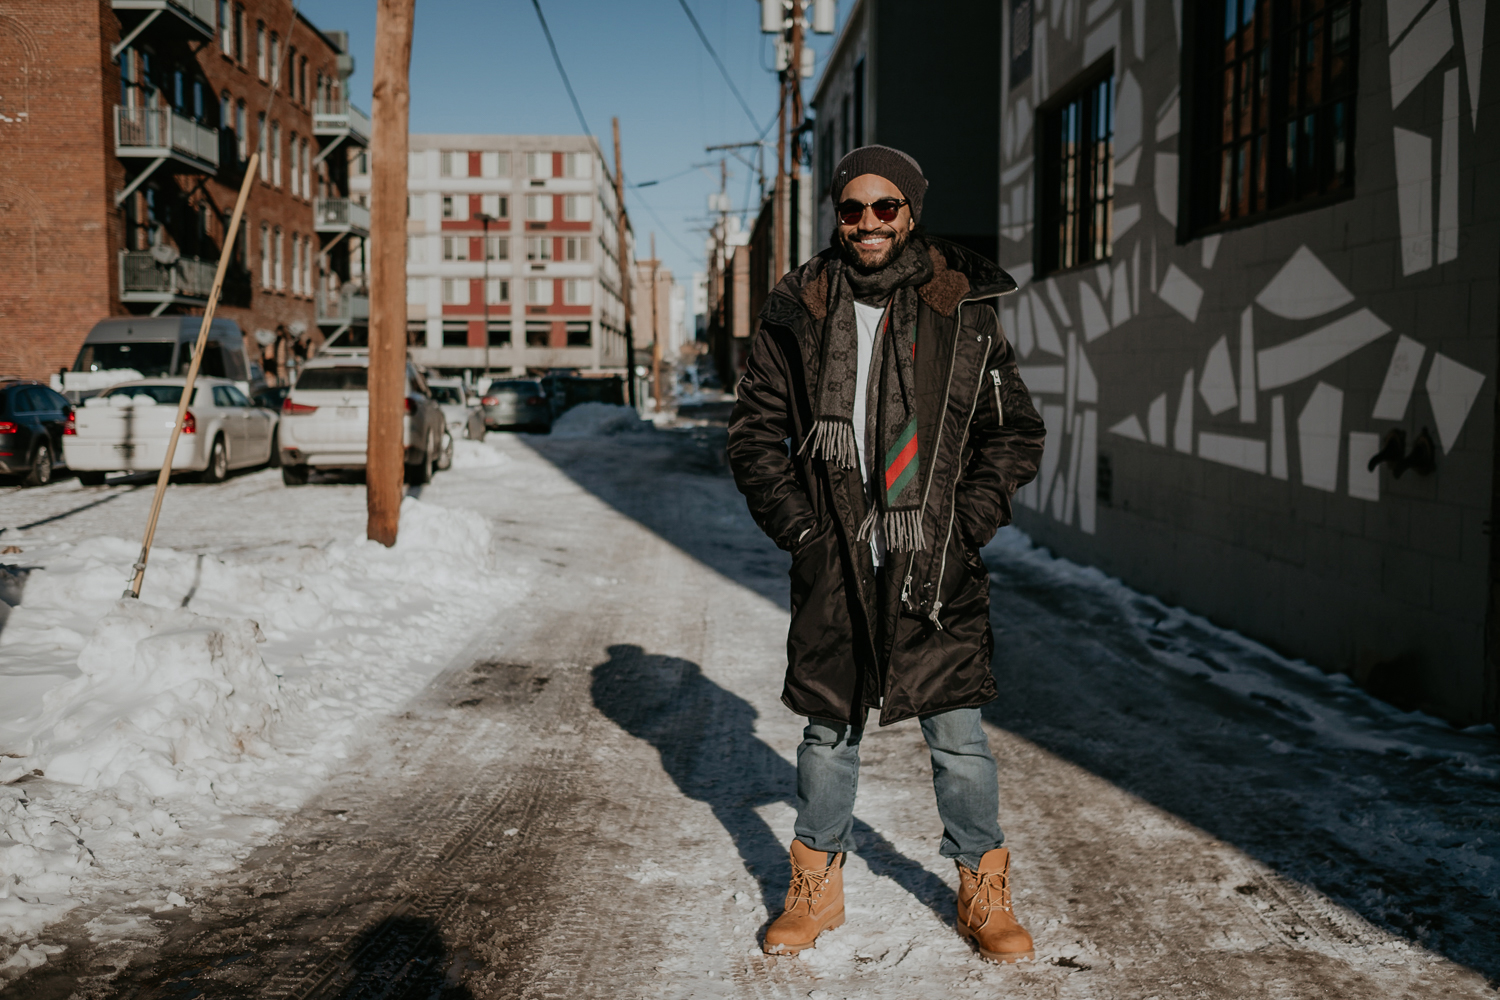 Ector laughing standing on snow wearing timberlands and long black jacket